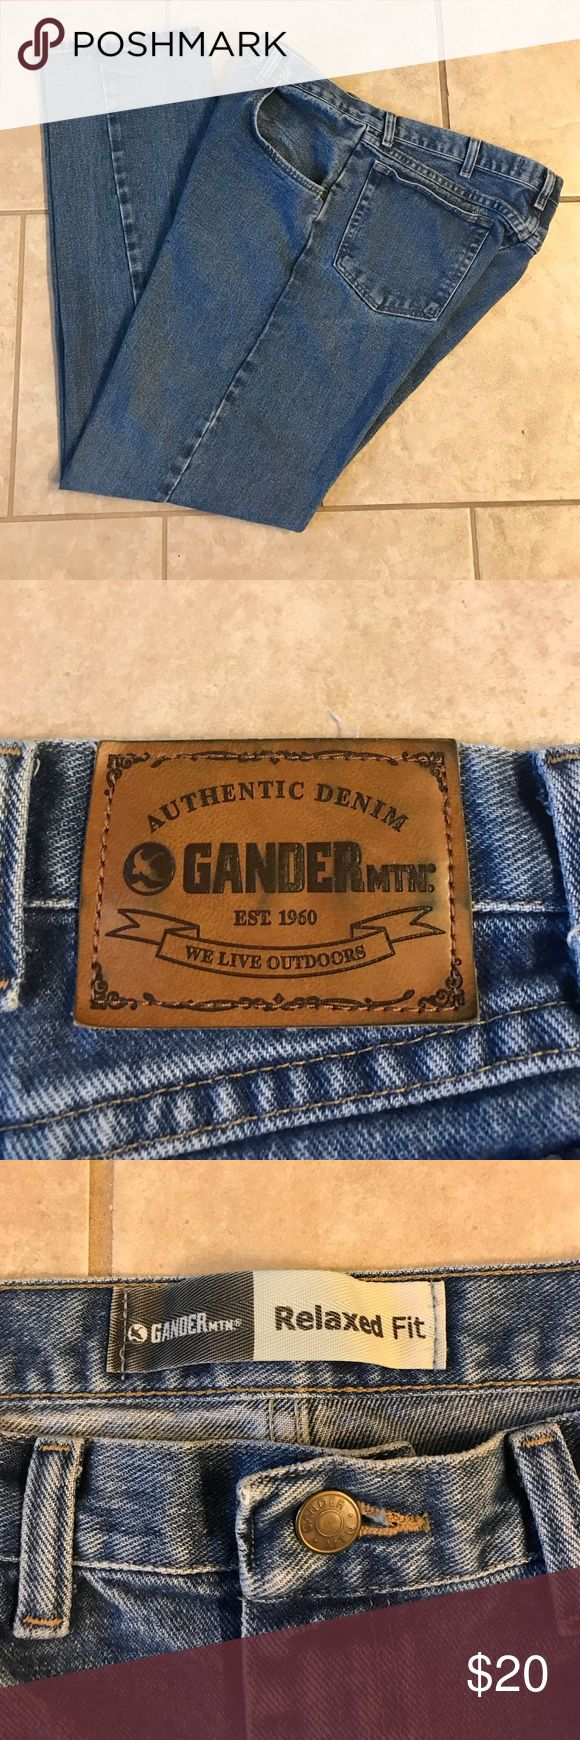 Gander Mountain mens jeans Very good condition, a little spot on the thigh, there is a pic, lightly worn. Gander Mountain Jeans